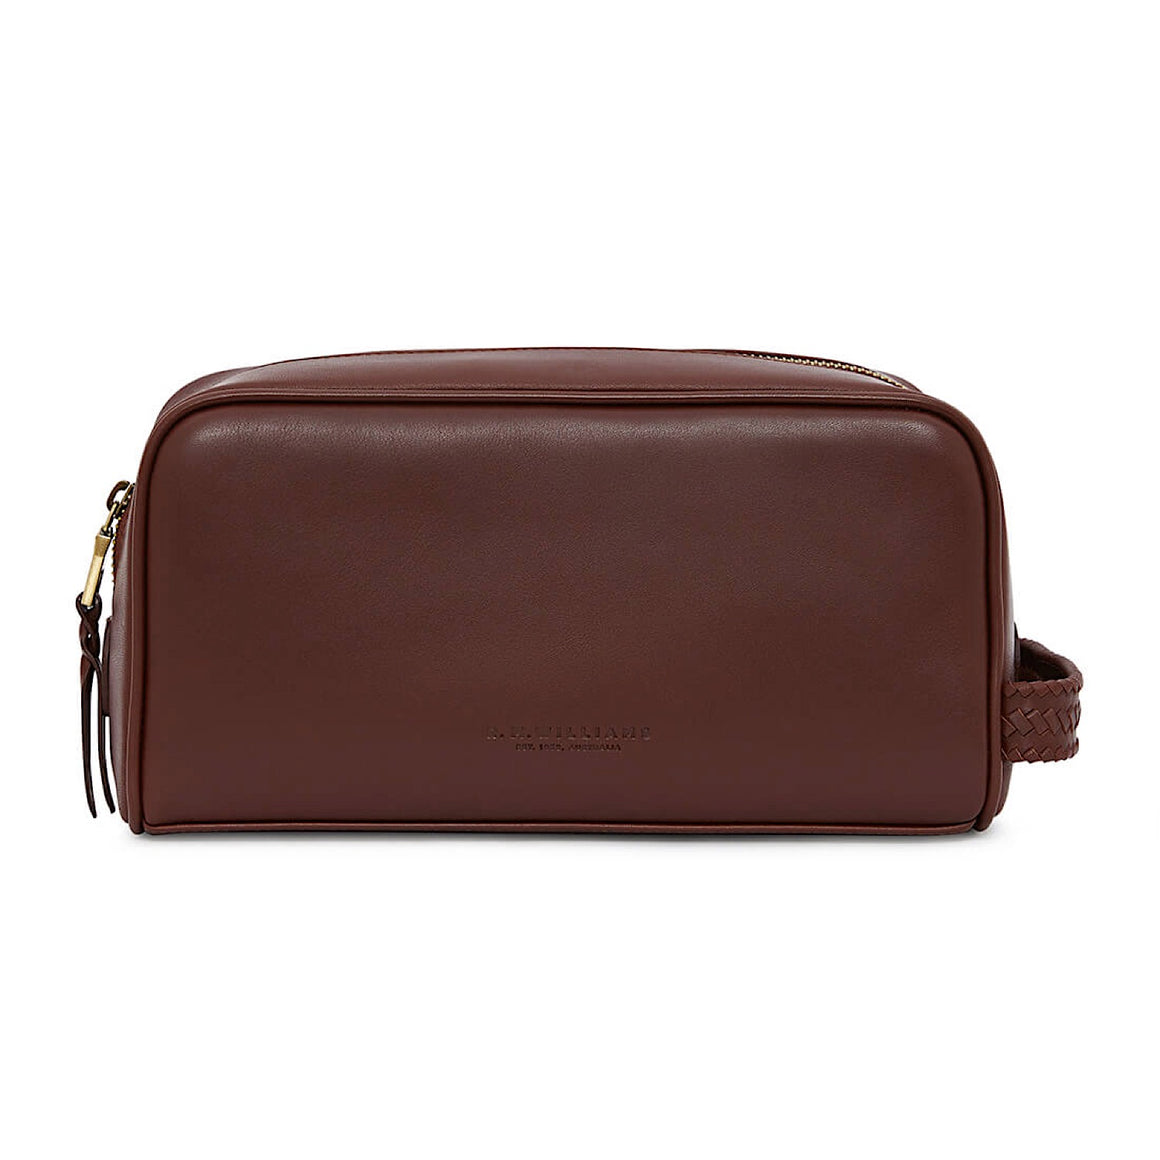 R.M.Williams City Wash Bag Chestnut